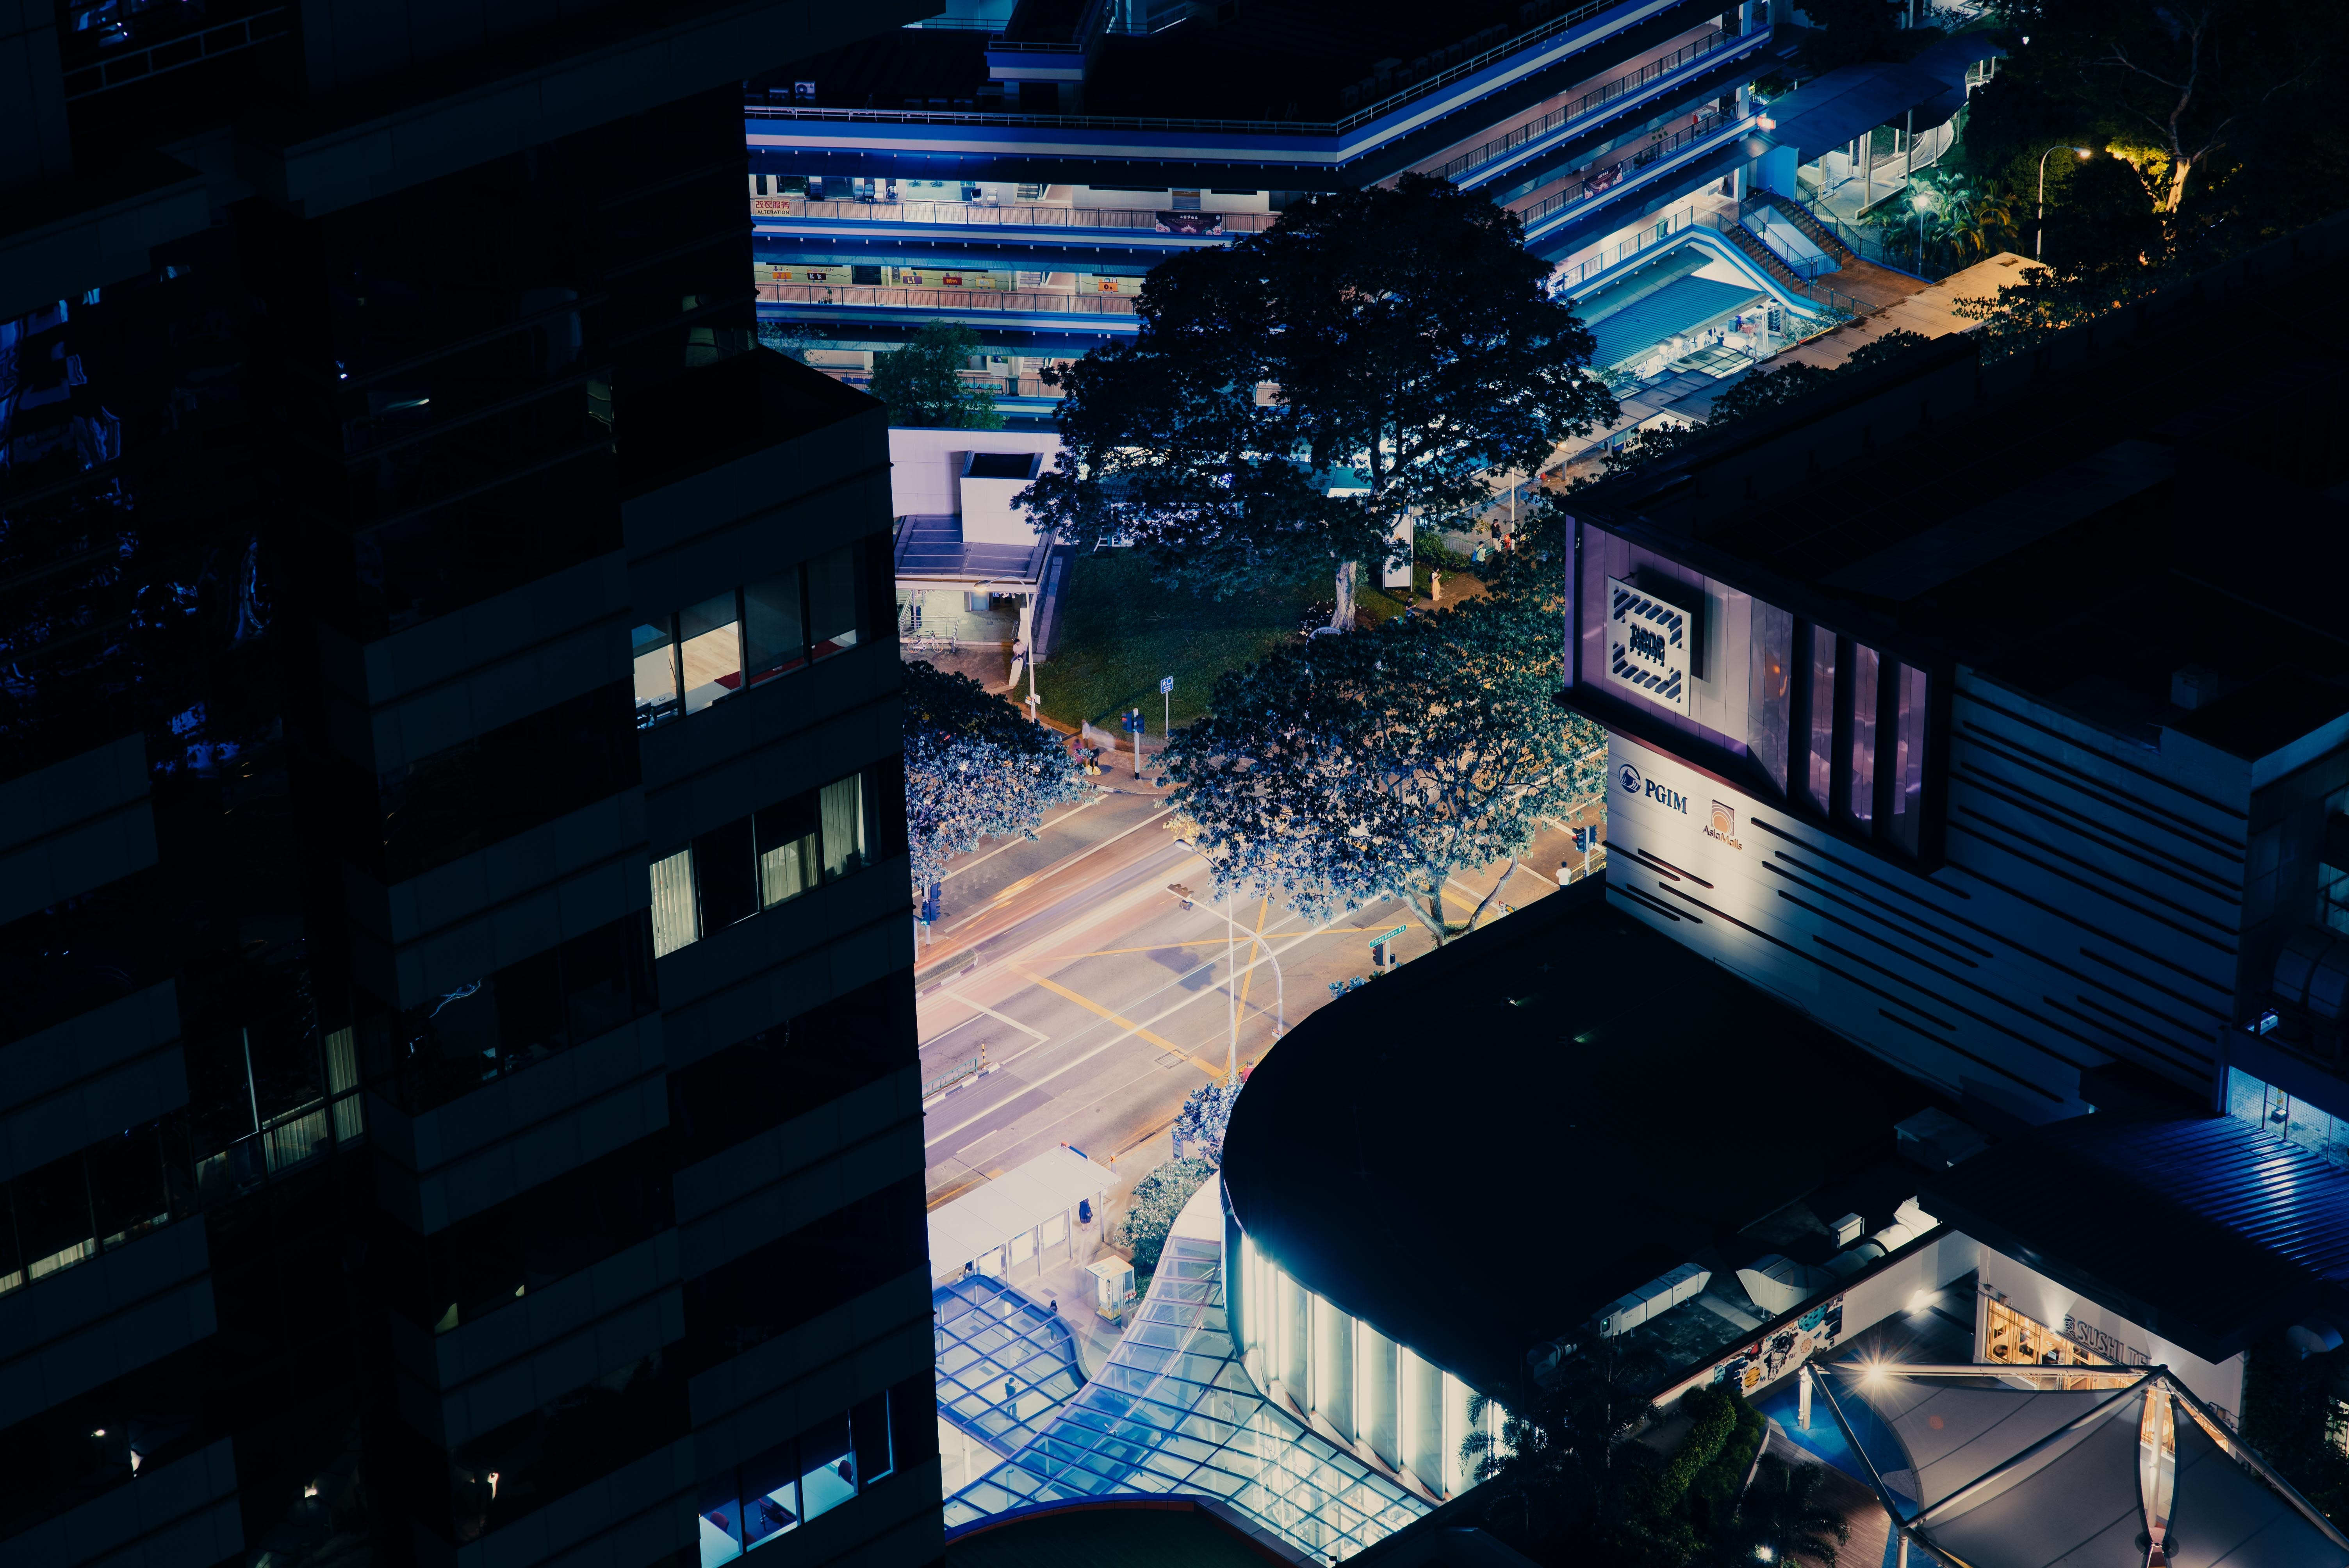 areal view of building at nighttime